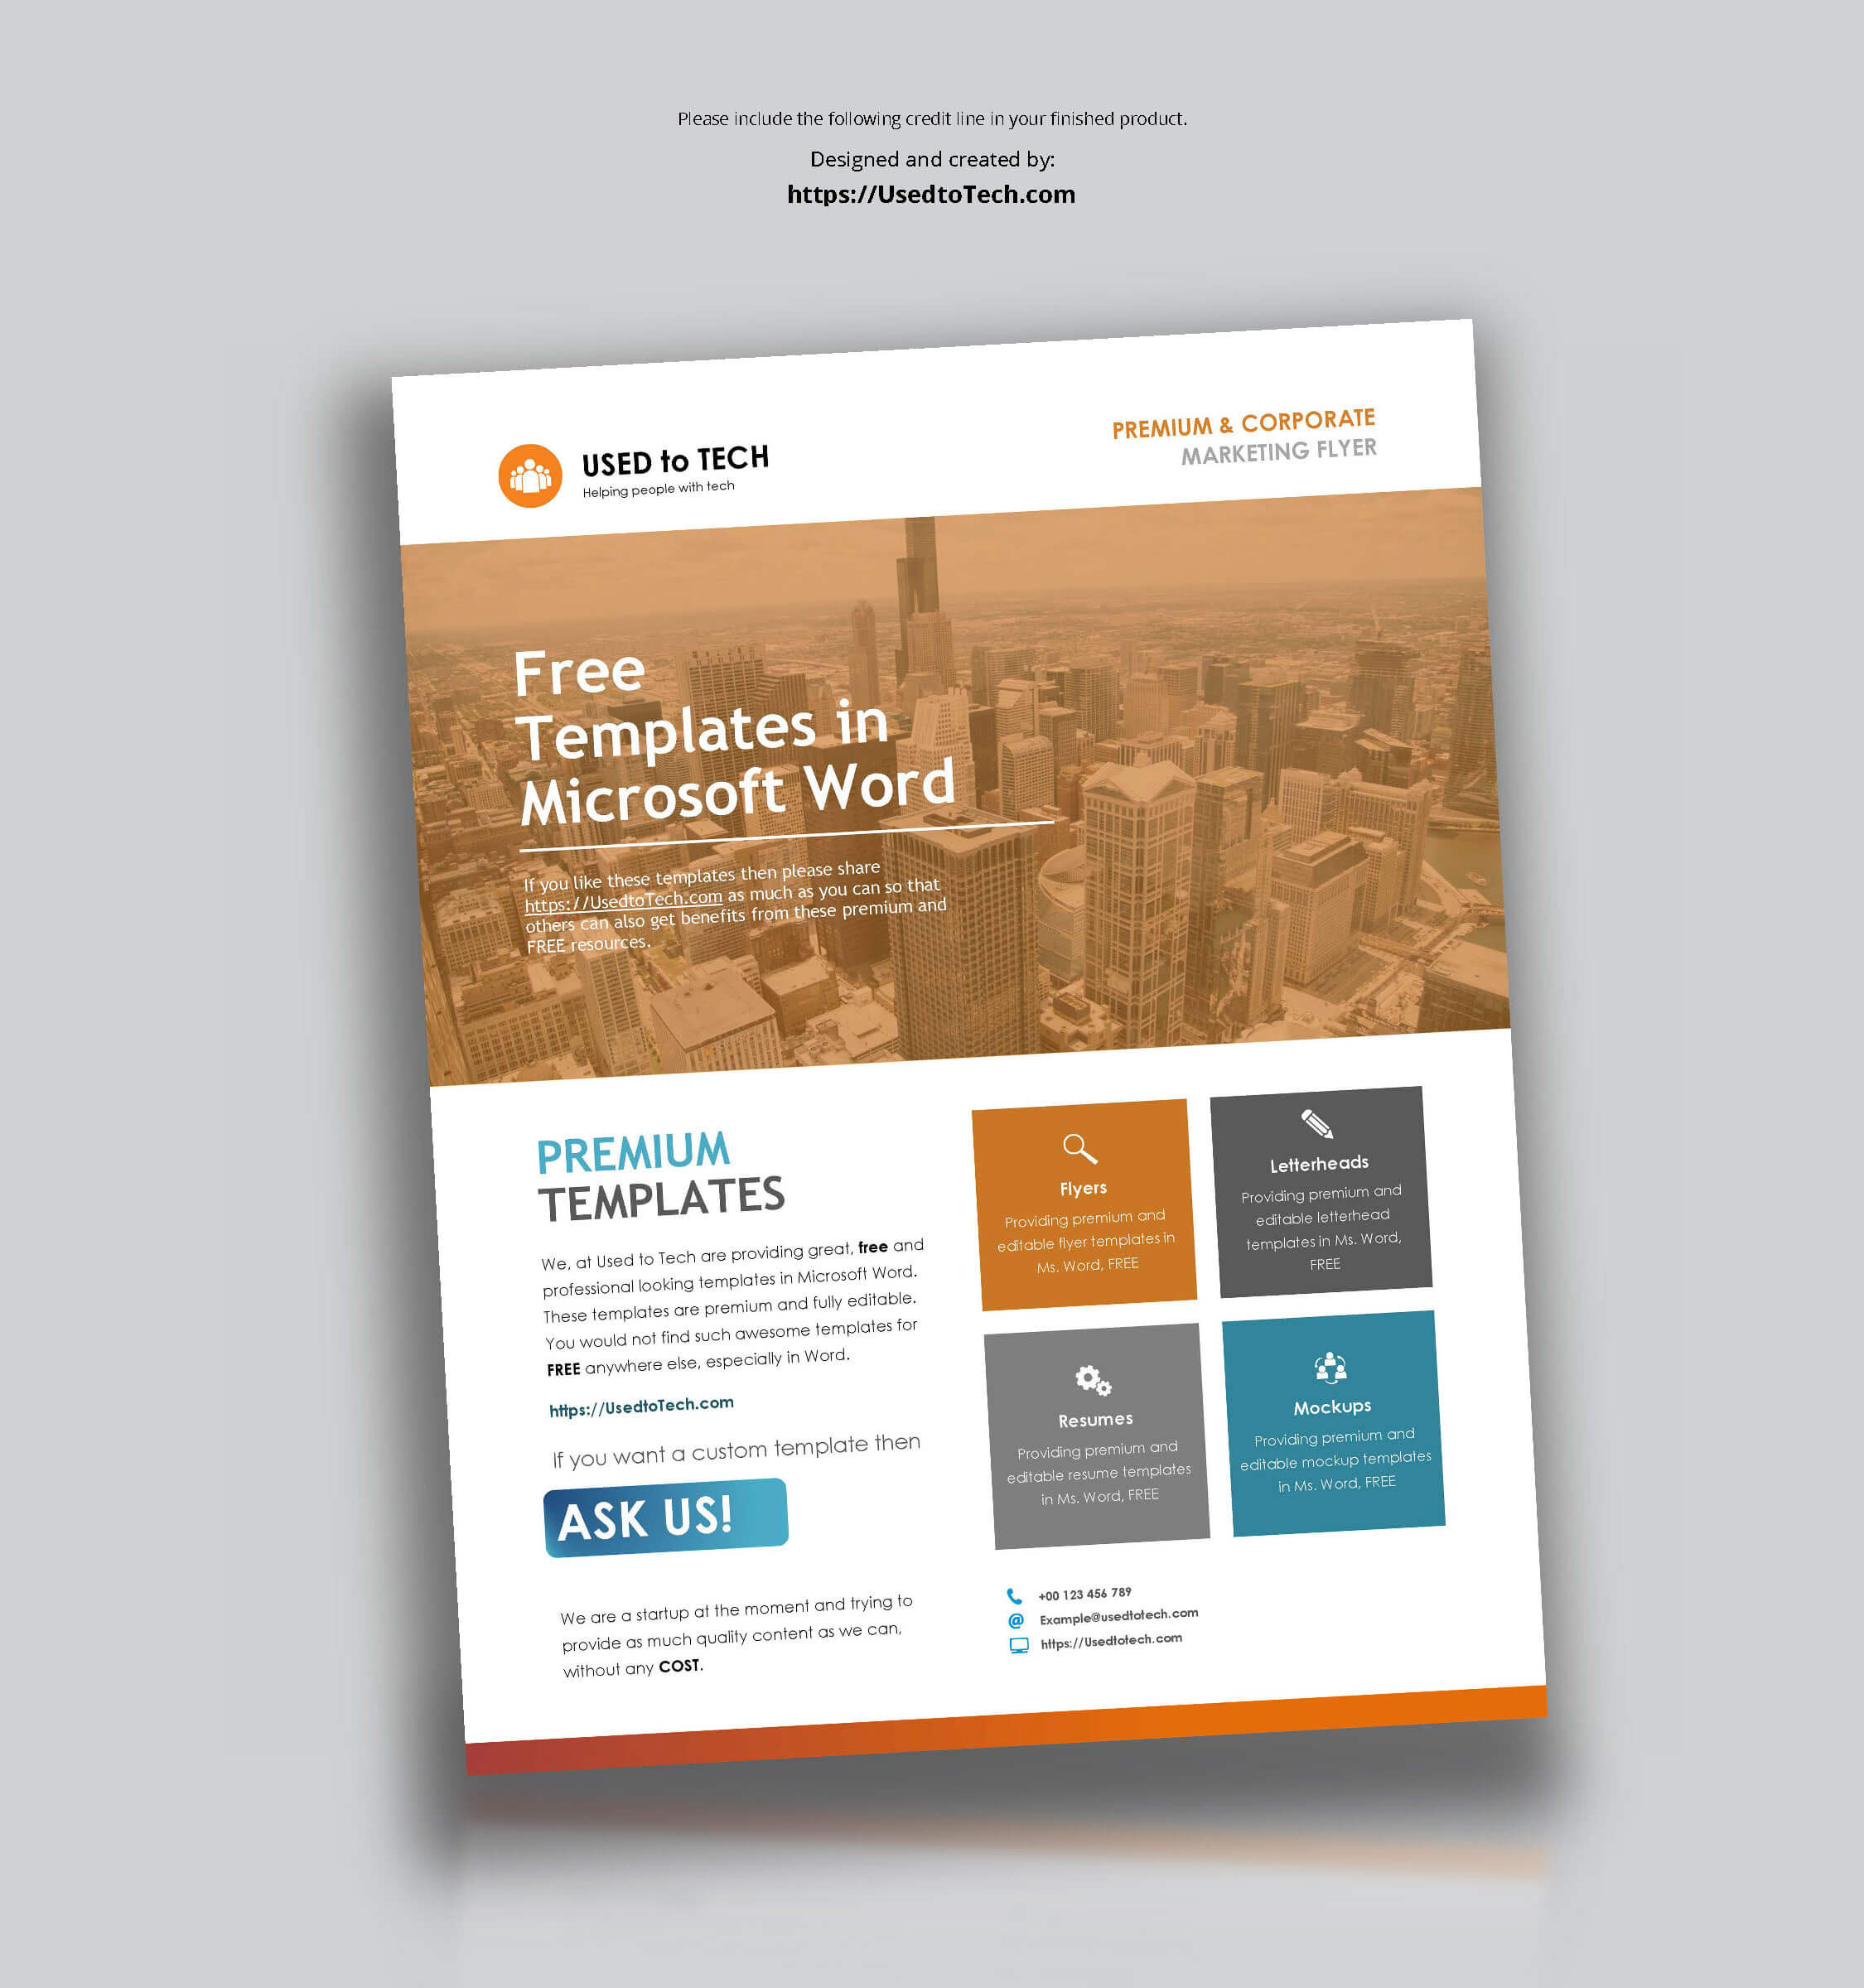 Corporate Flyer Design In Microsoft Word Free - Used To Tech Pertaining To Free Business Flyer Templates For Microsoft Word